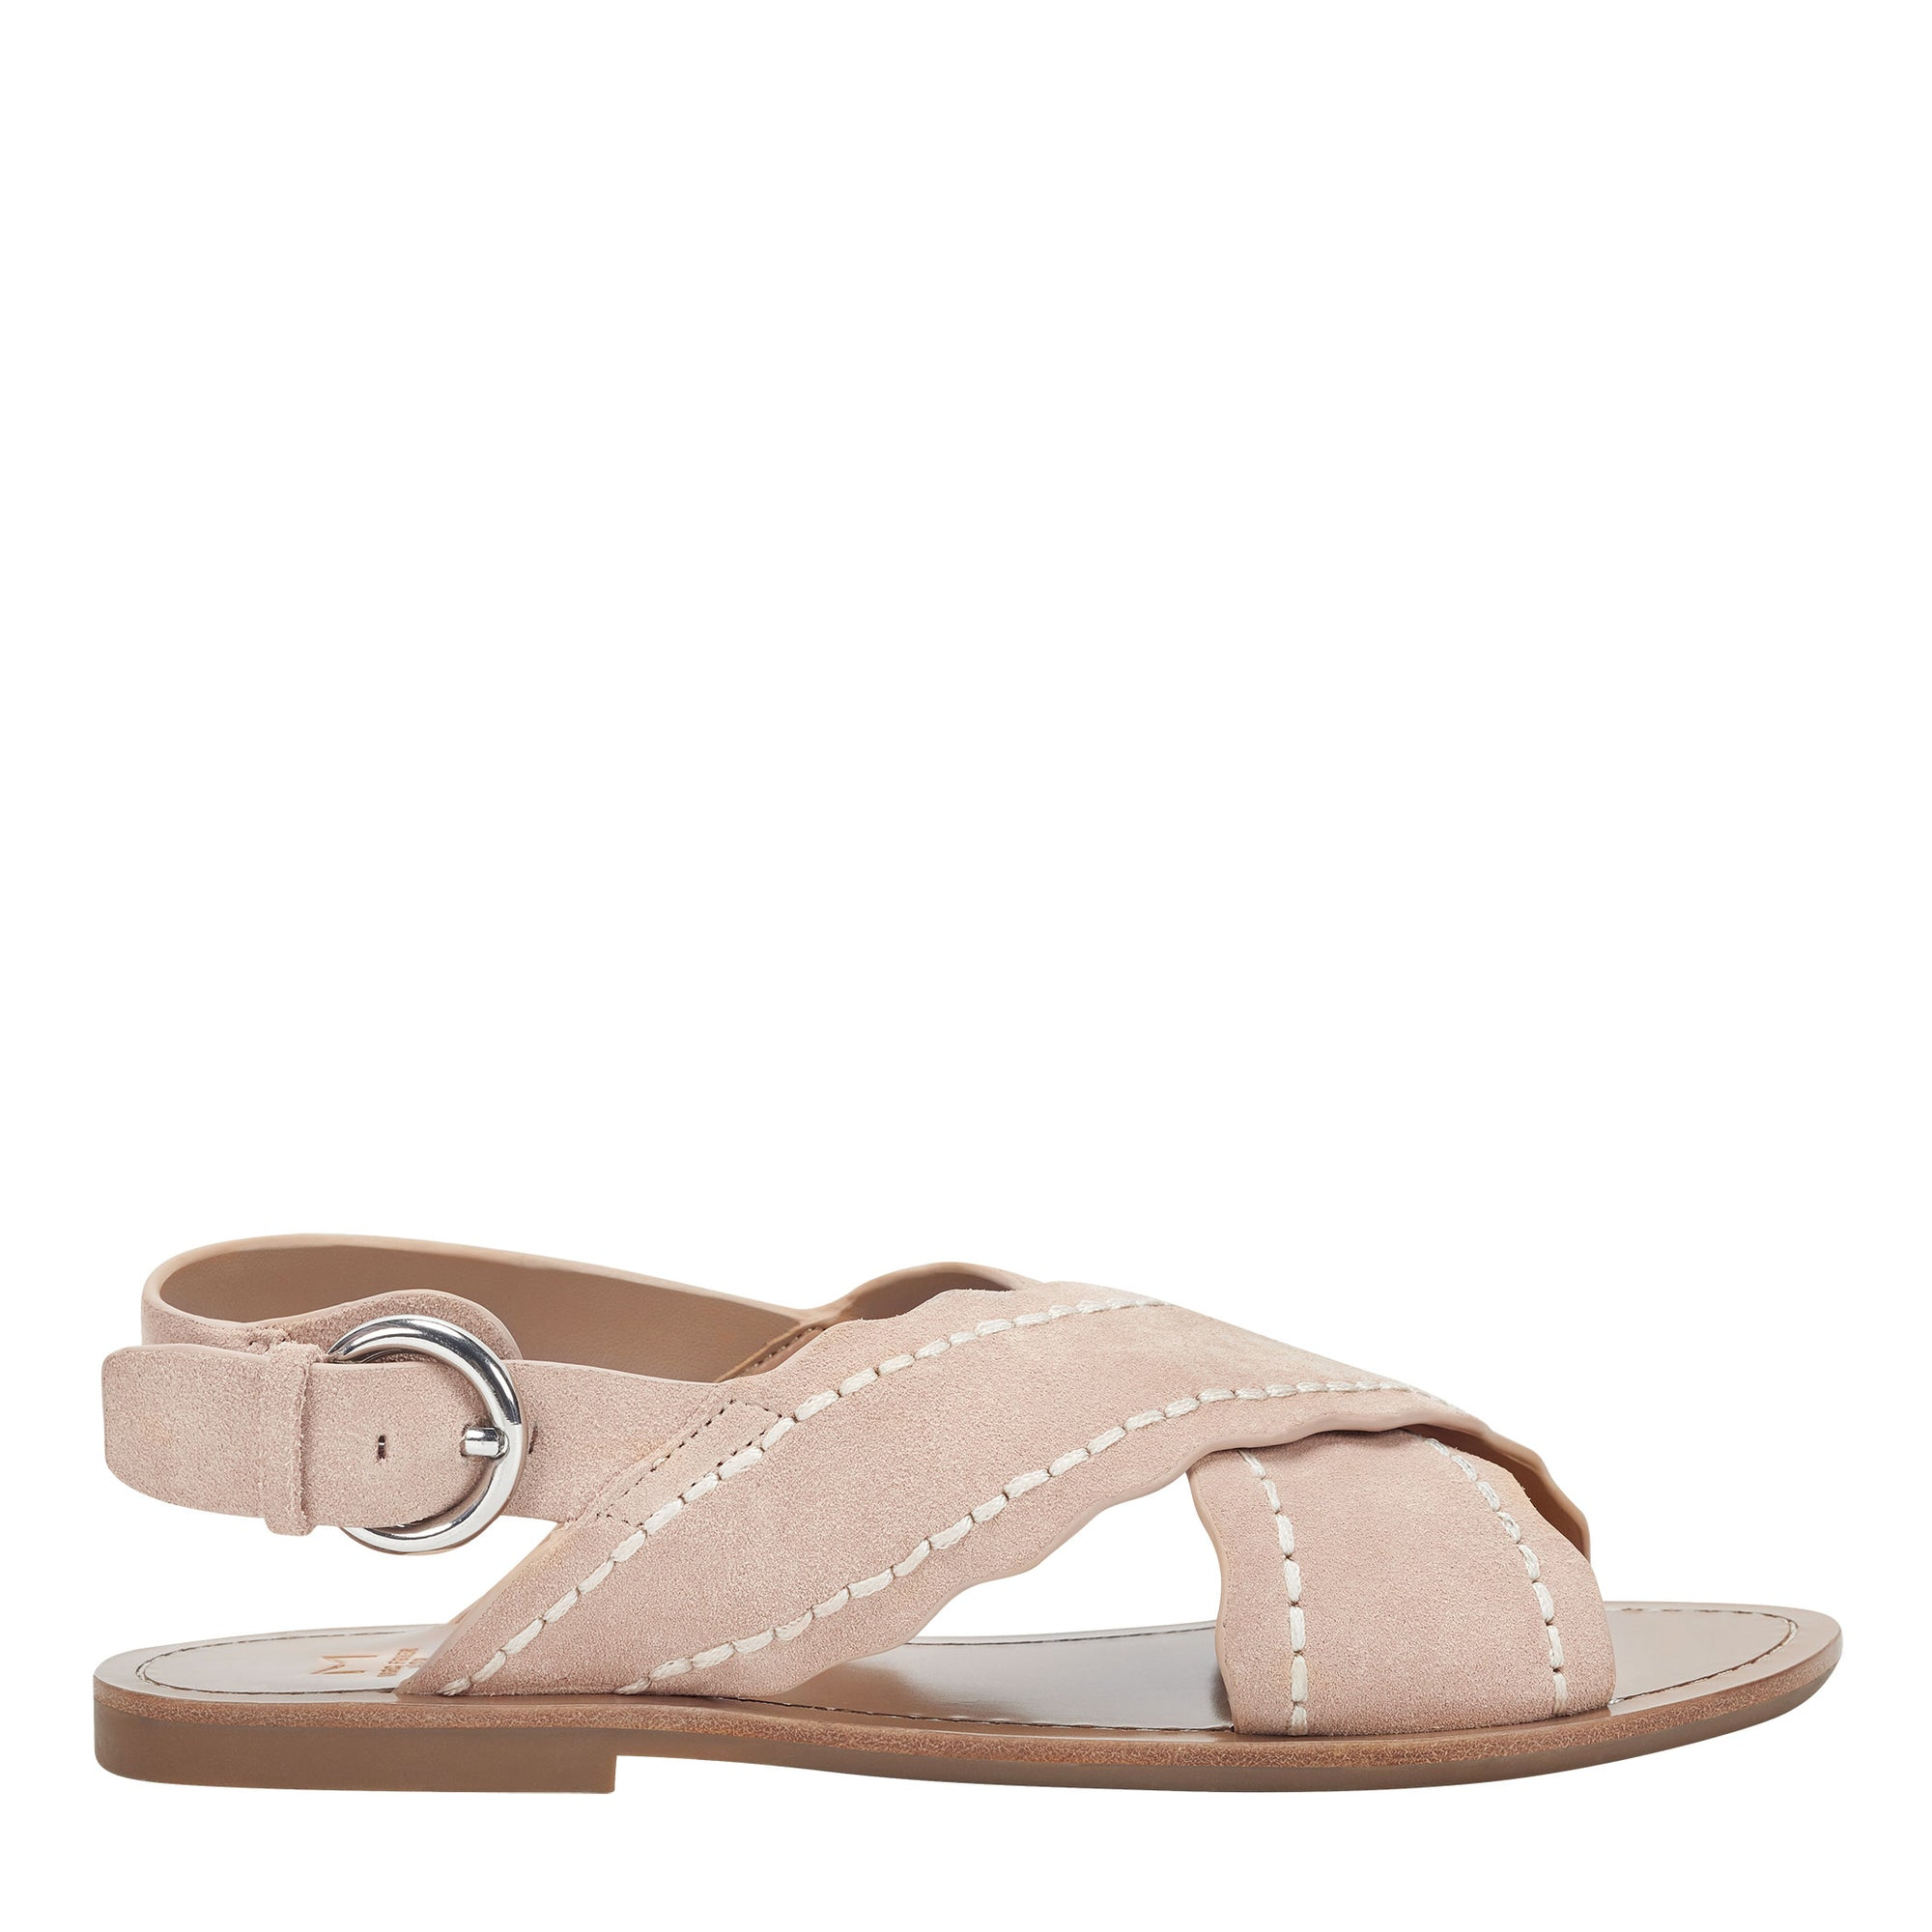 renny-flat-sandal-in-natural-suede